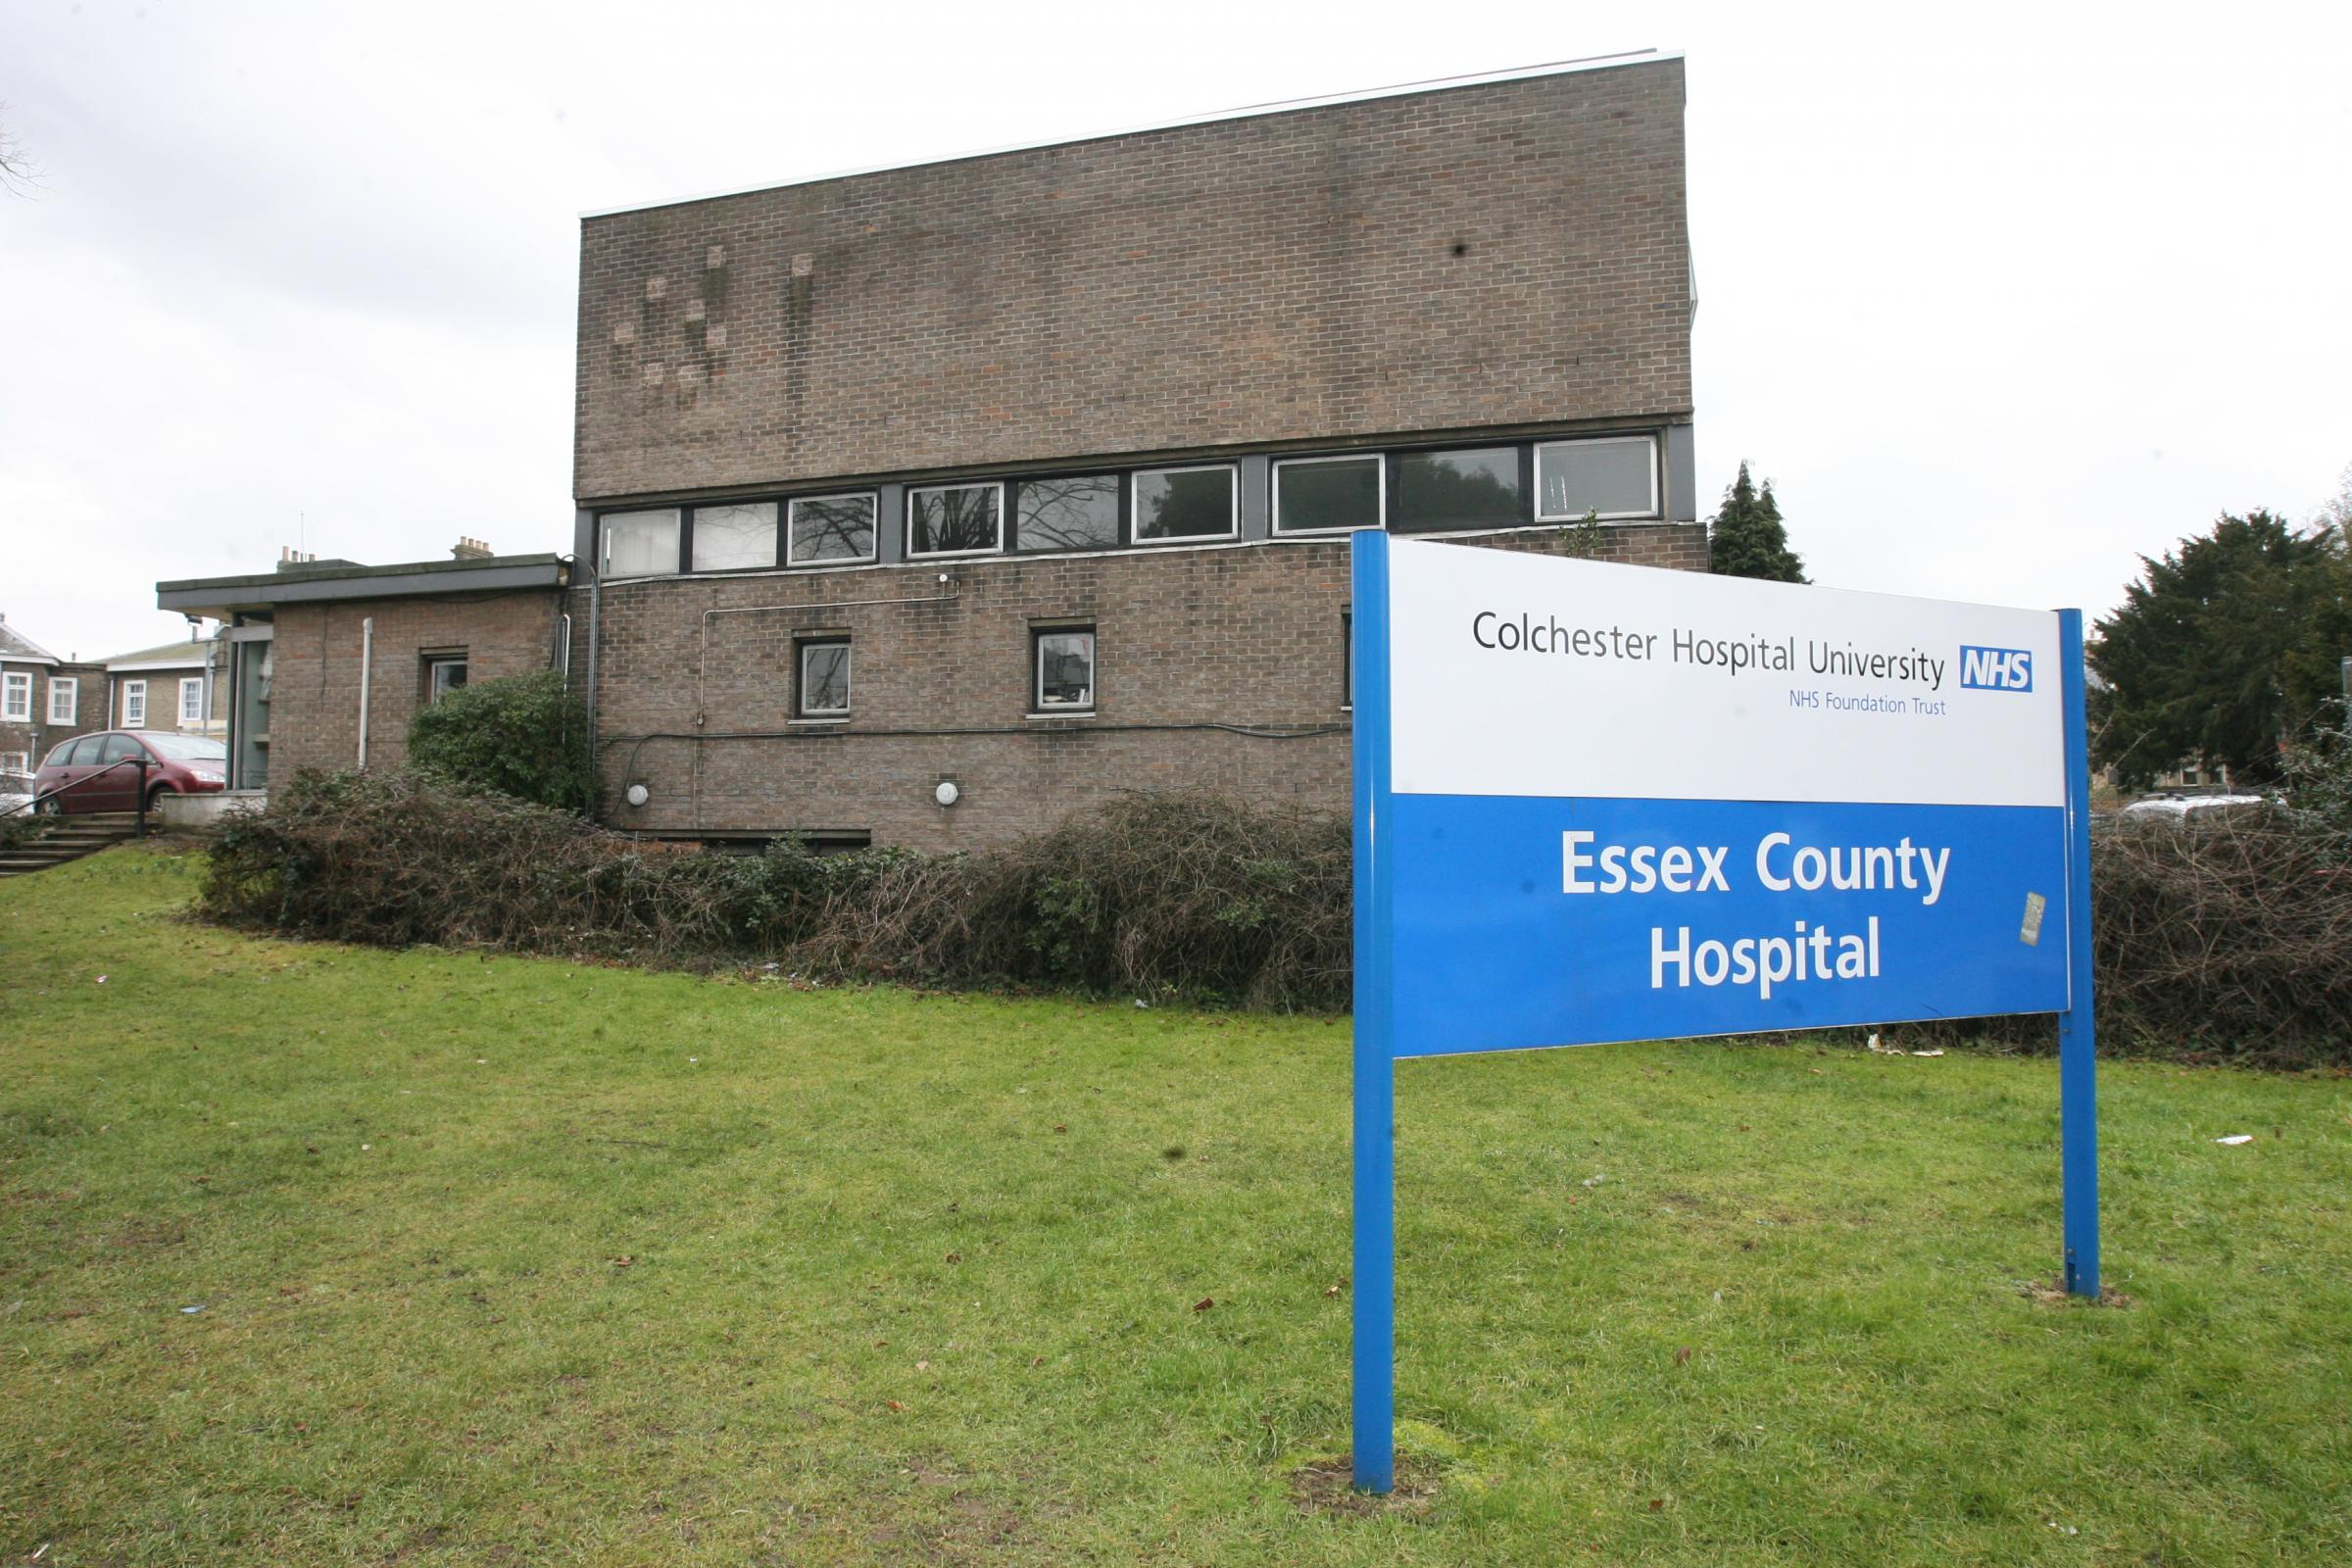 Services likely to move to health centre when Essex County Hospital closes